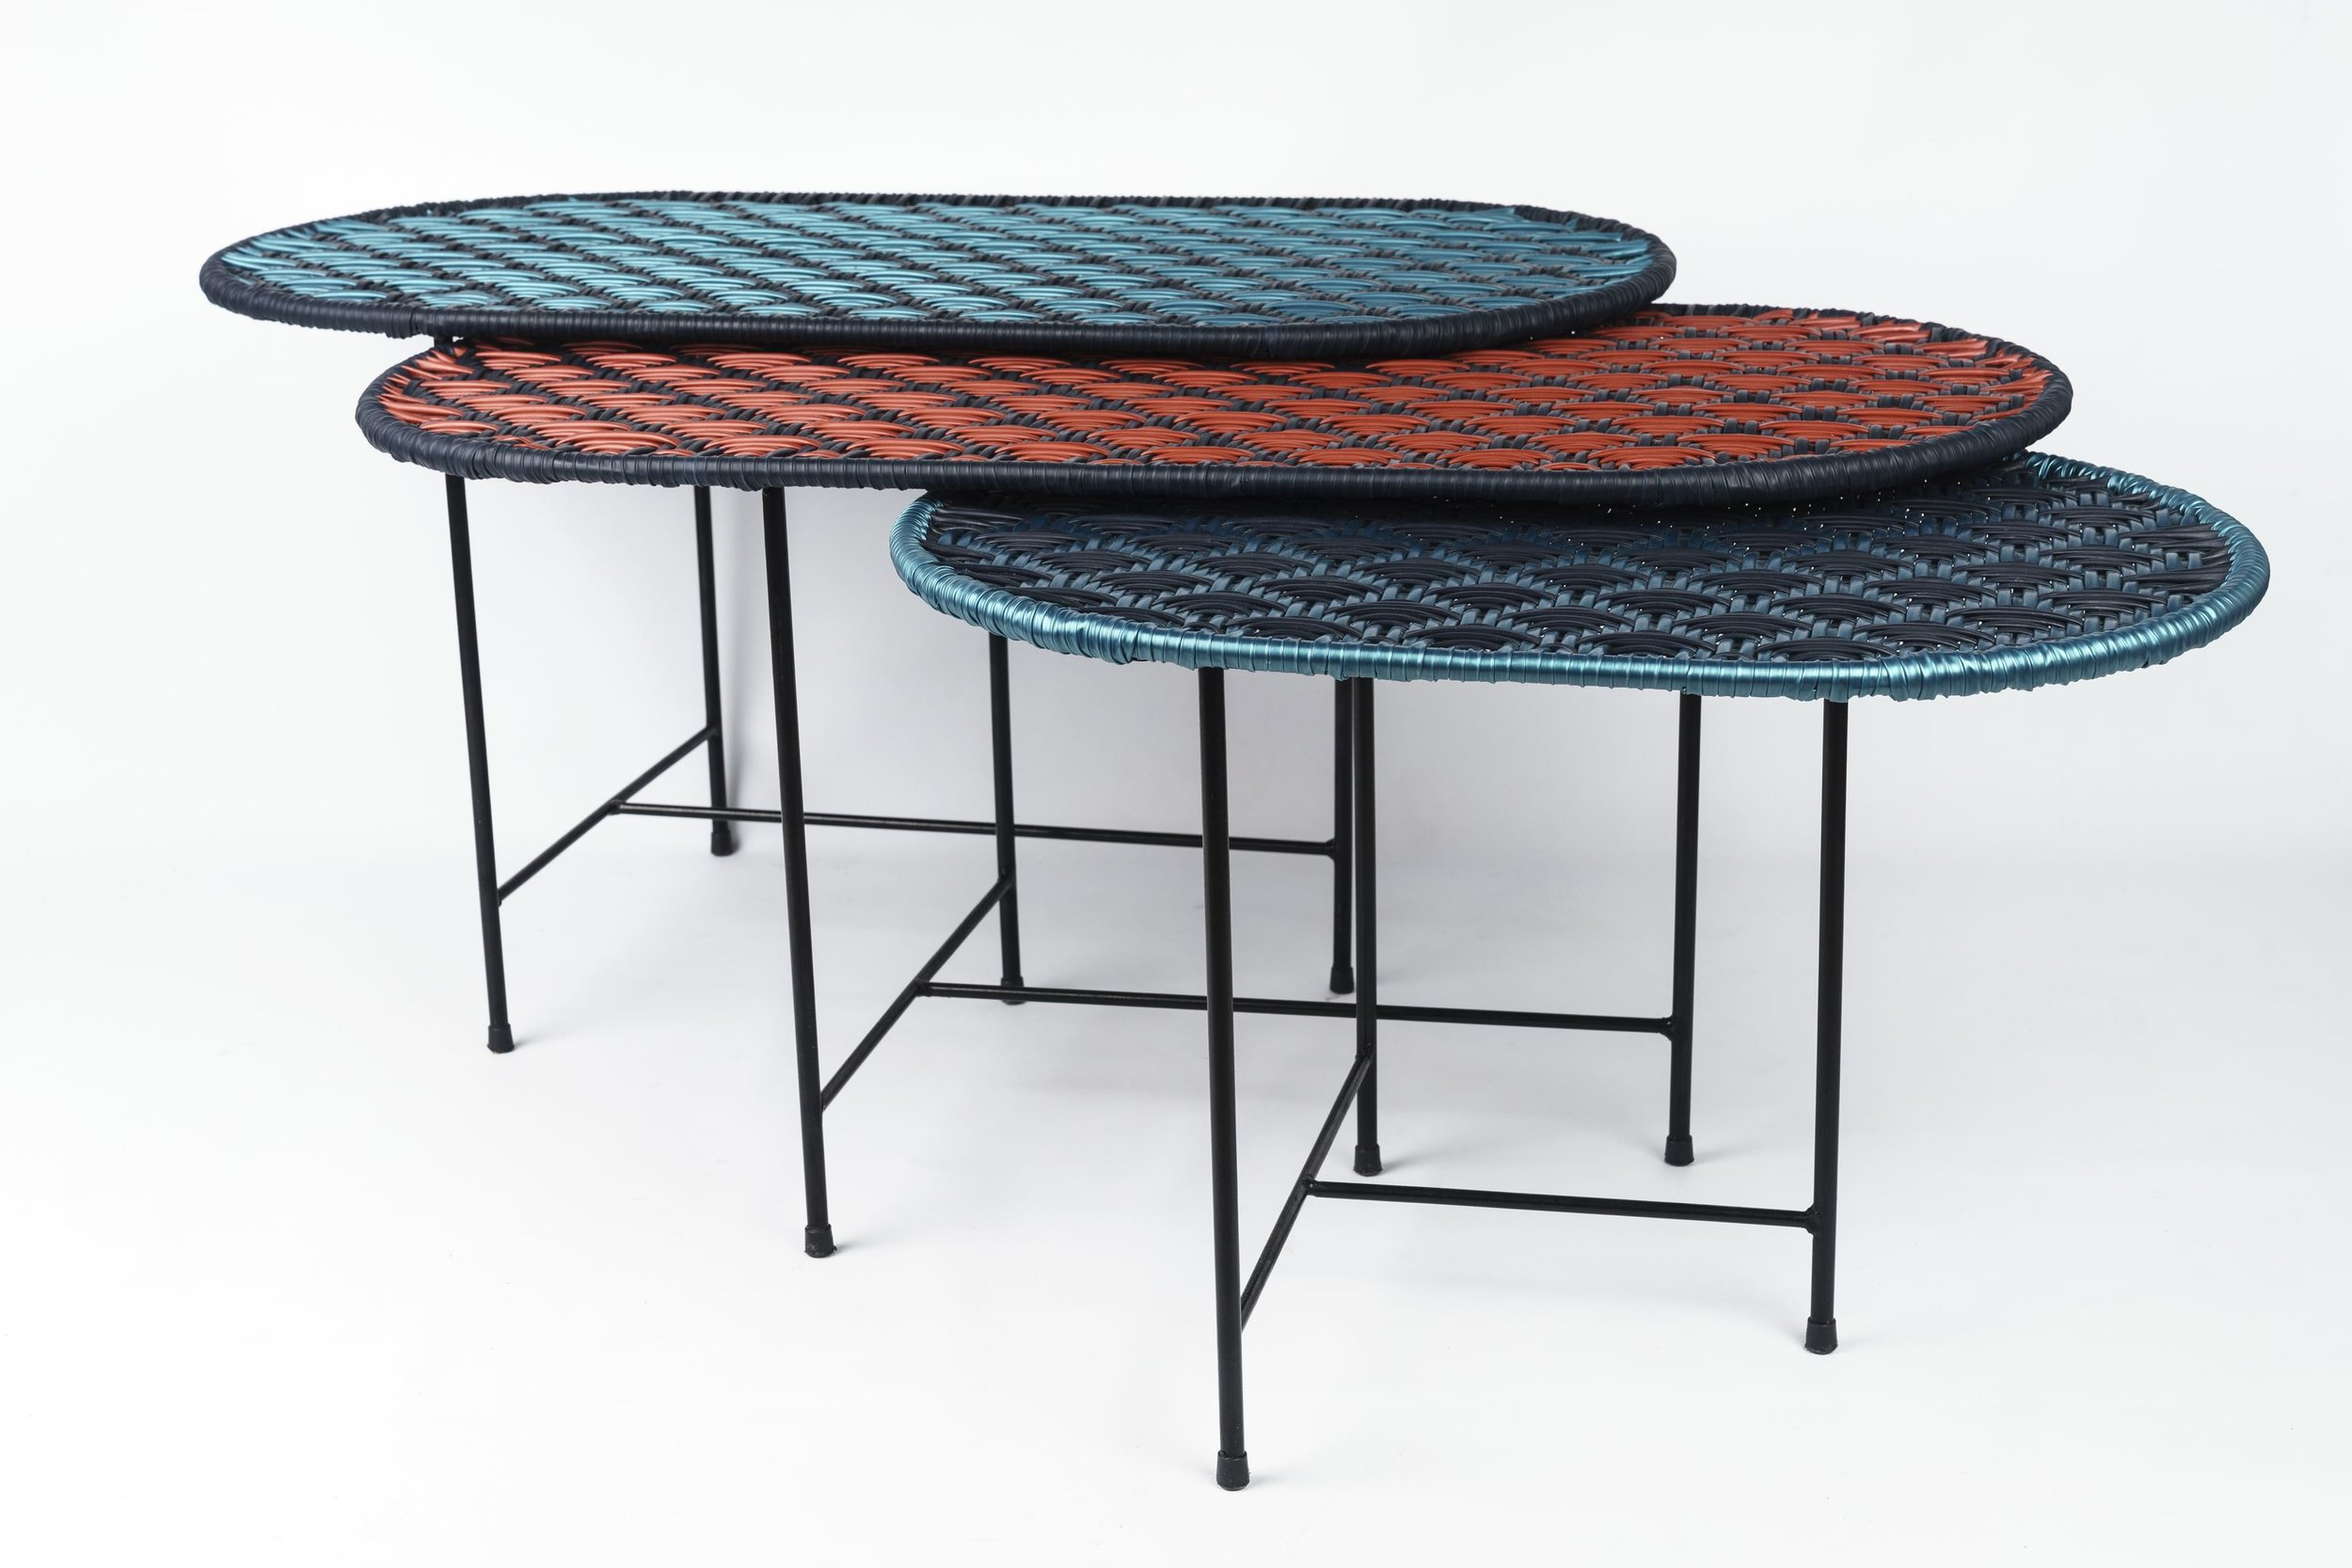 These products are the result of a collaboration between Tu Taller Design and Tucurinca.